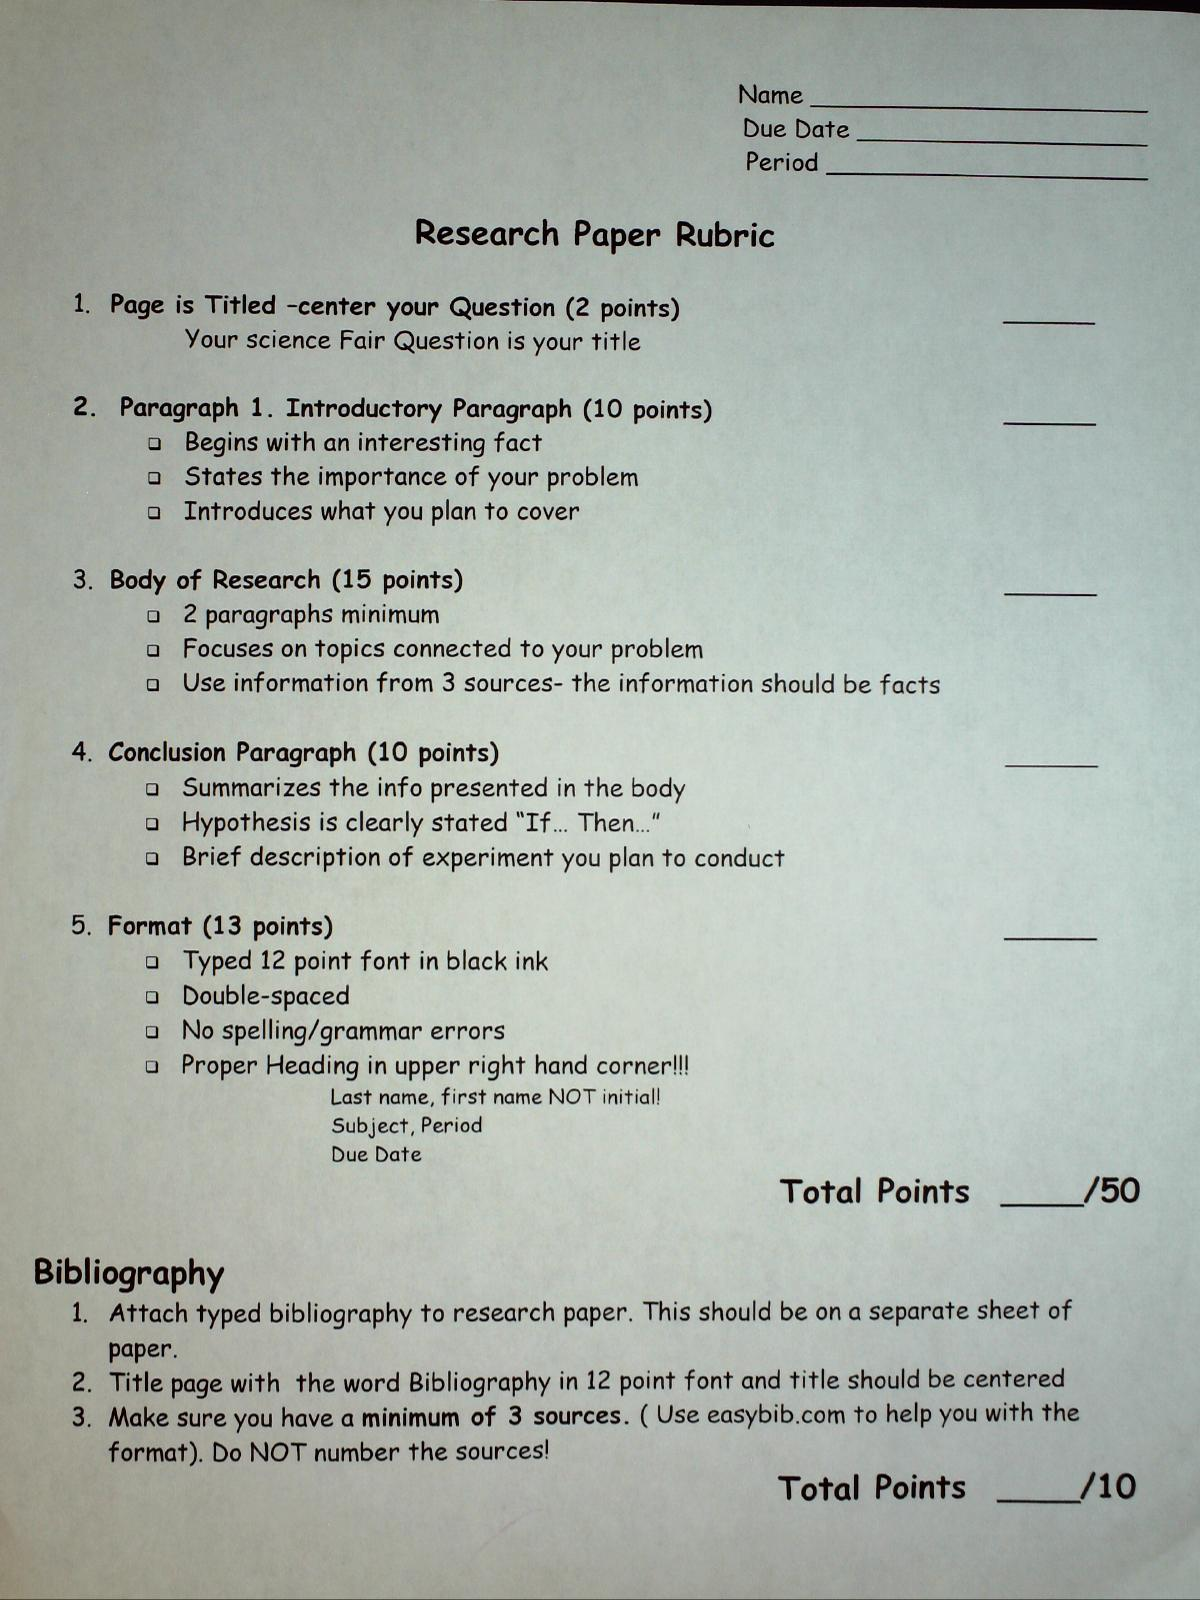 how to write an abstract for science fair